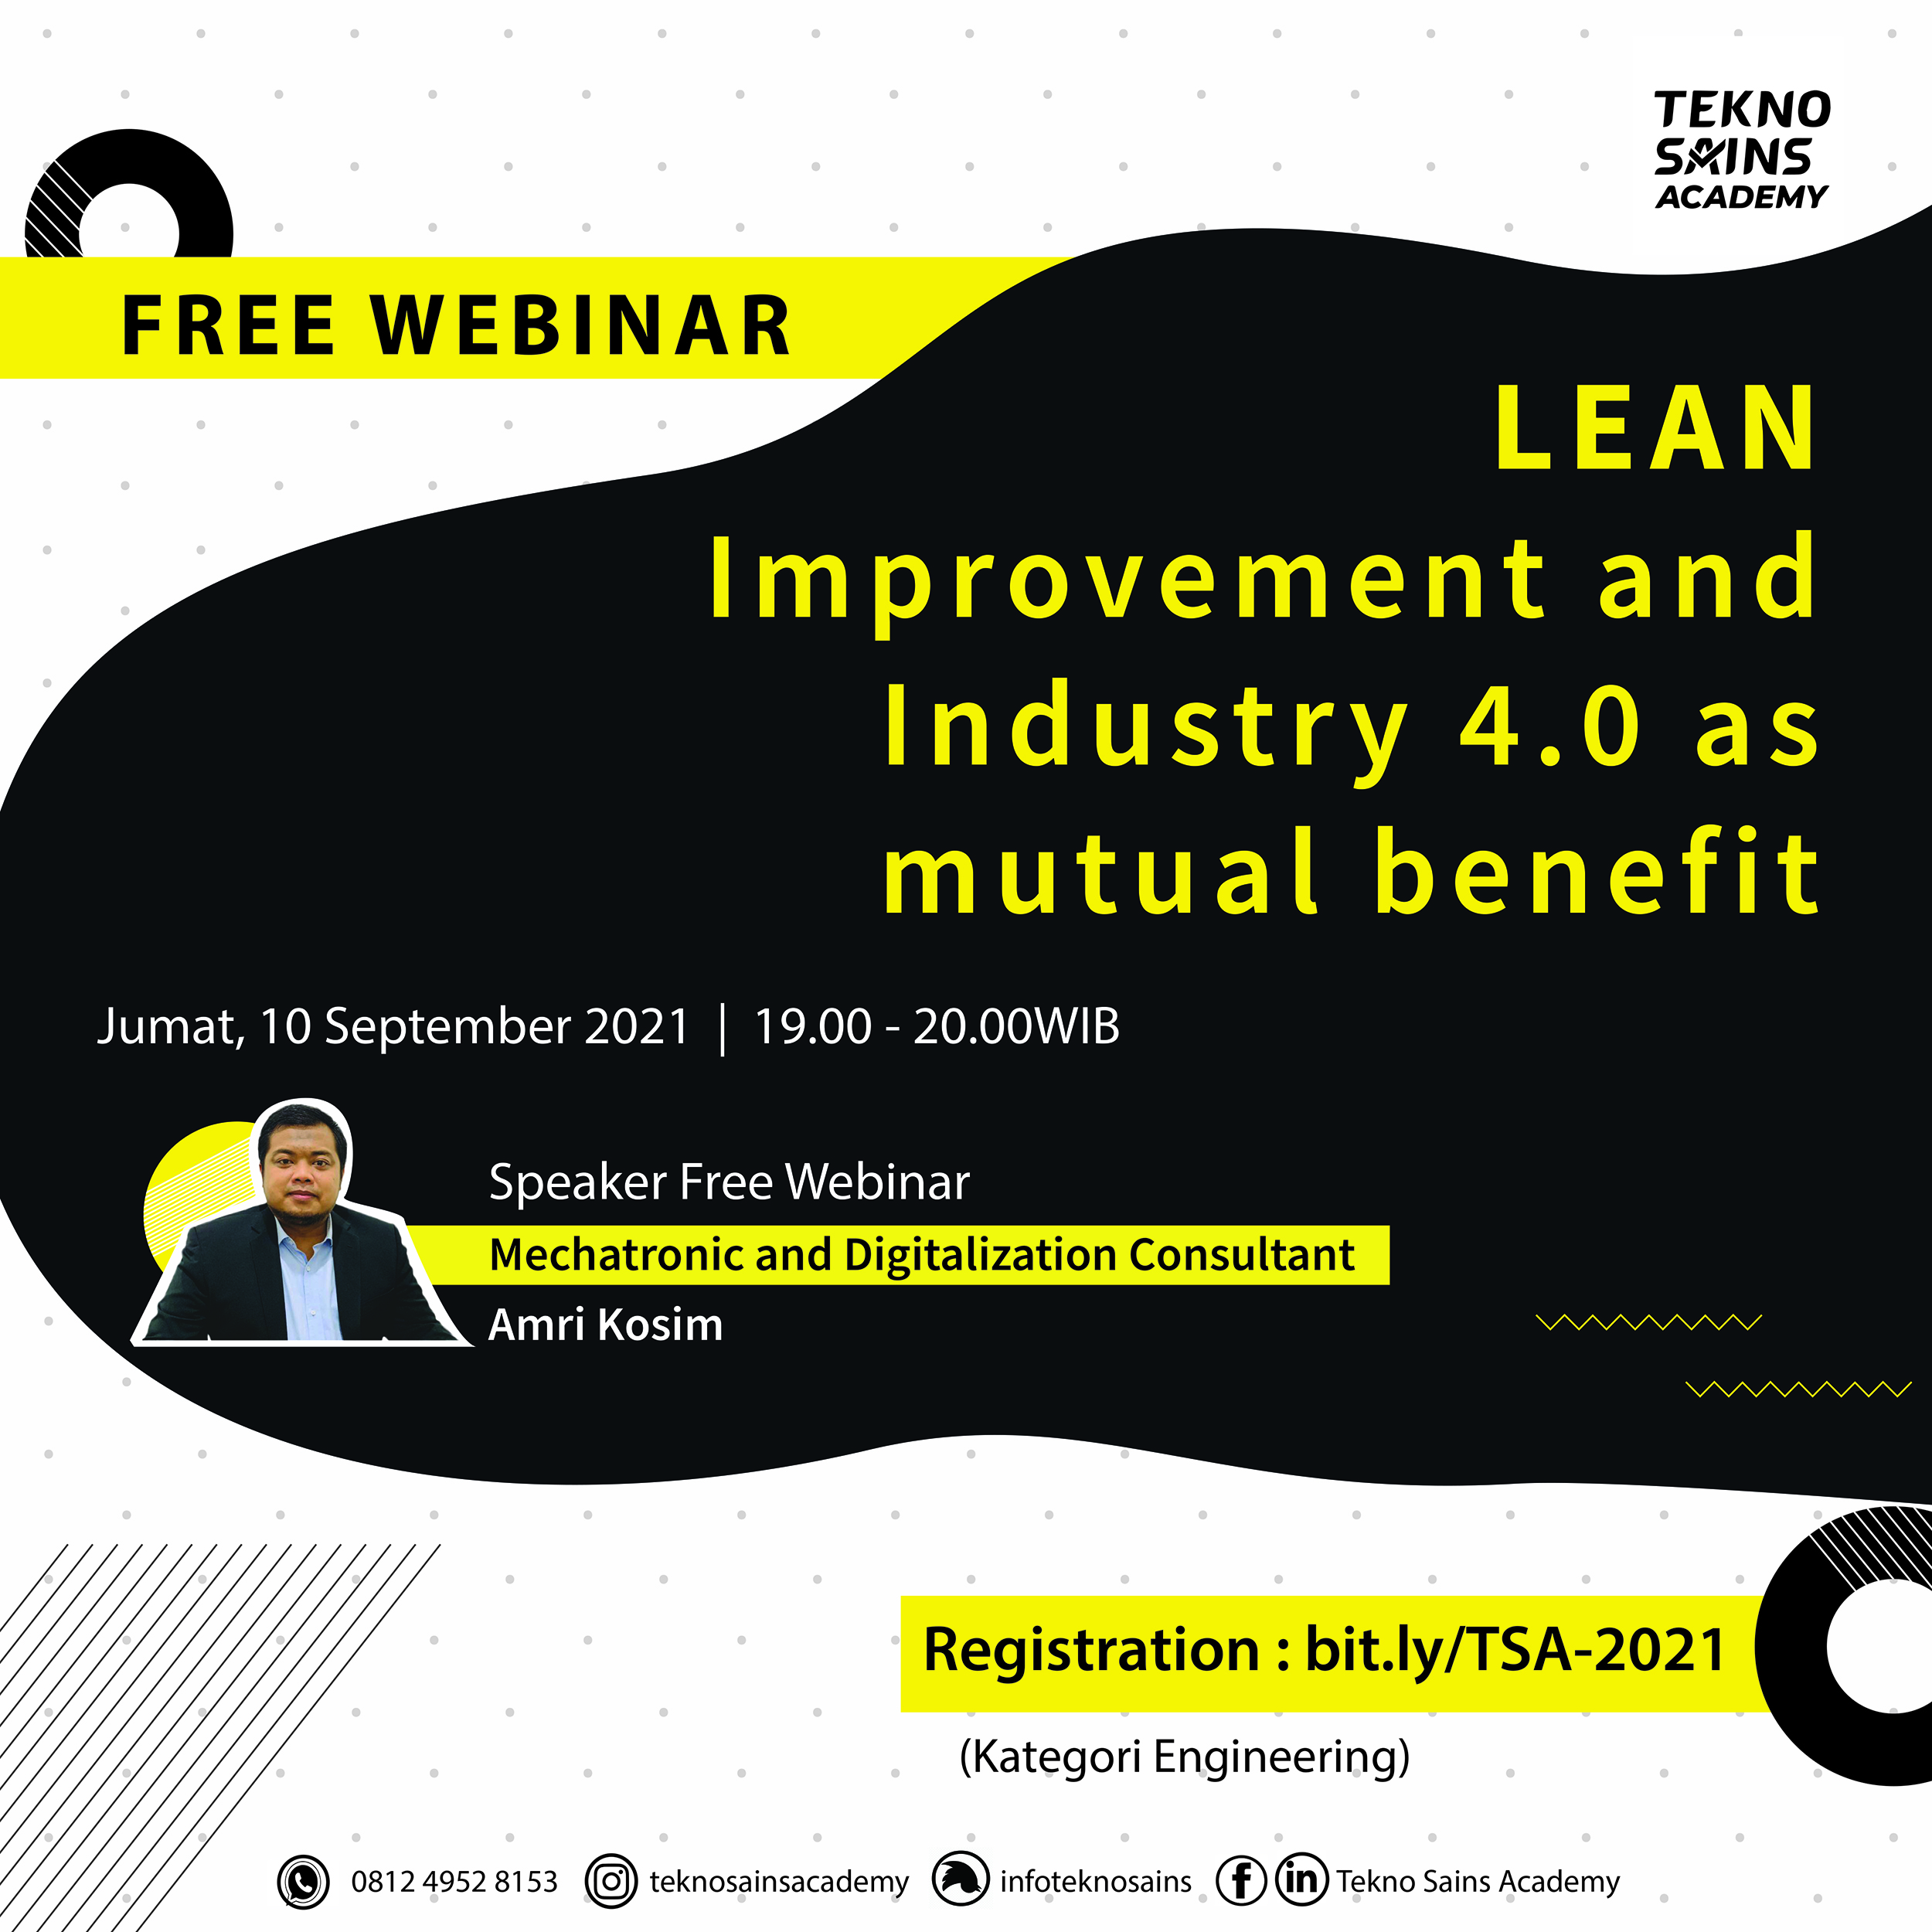 20210812-00-LEAN Improvement and Industry 4.0 as mutual benefit